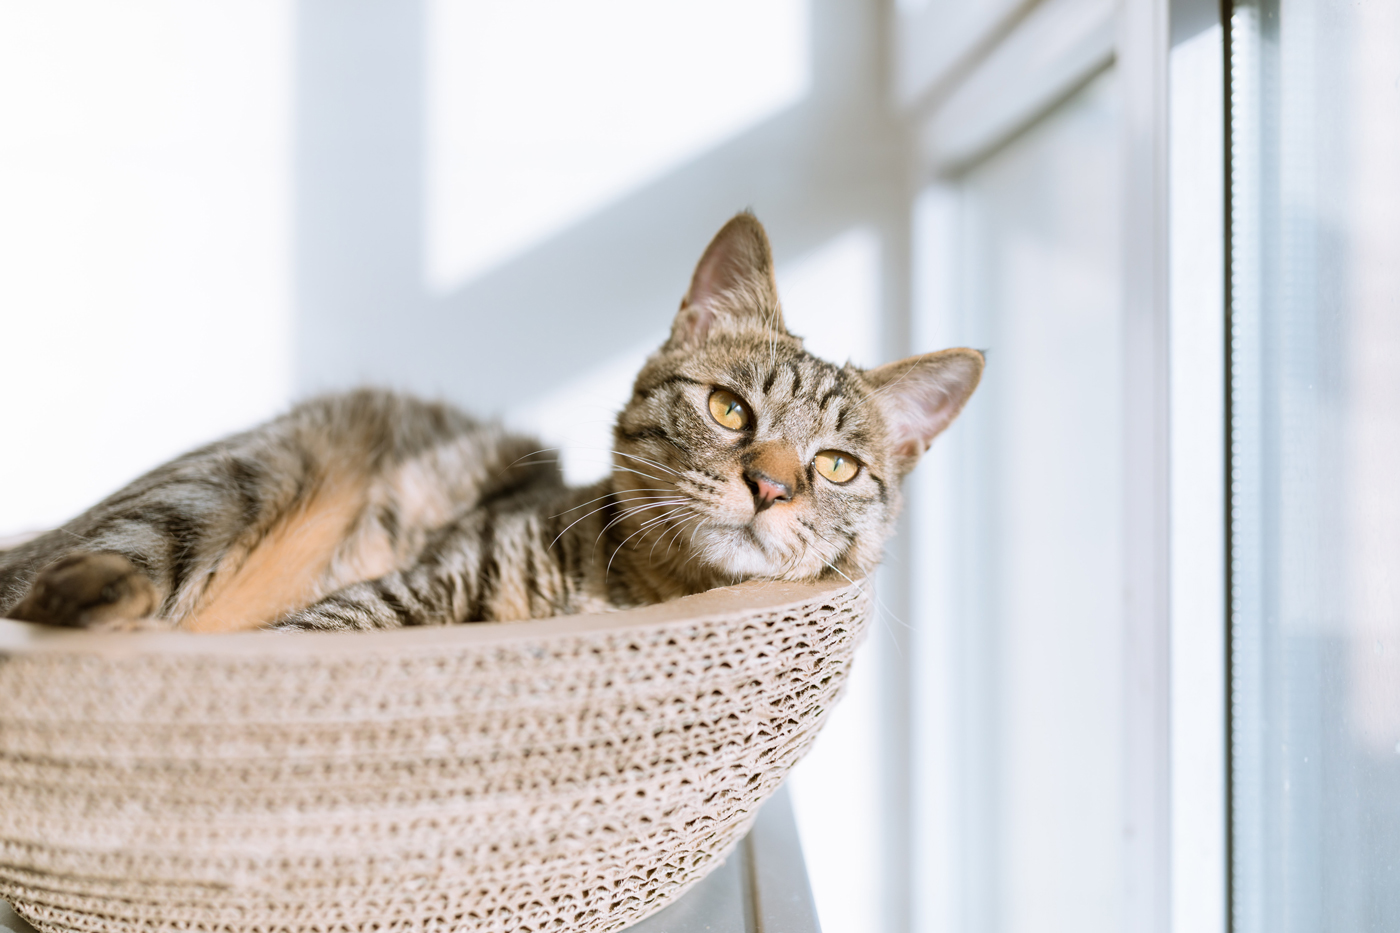 A cat laying in a round cat bed looking out of a window